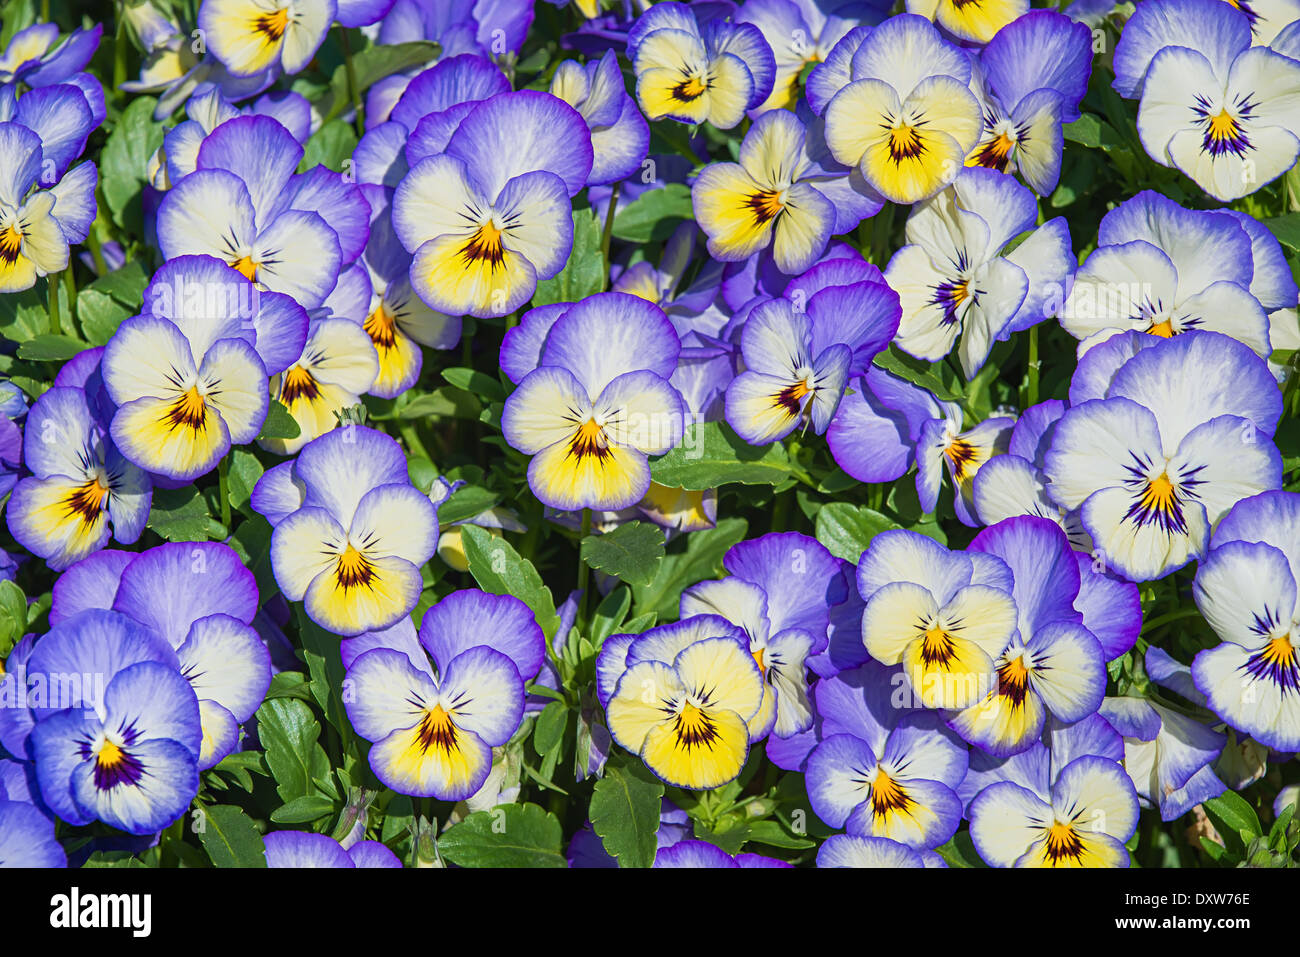 Viola Blue Yellow Stock Photos Viola Blue Yellow Stock Images Alamy